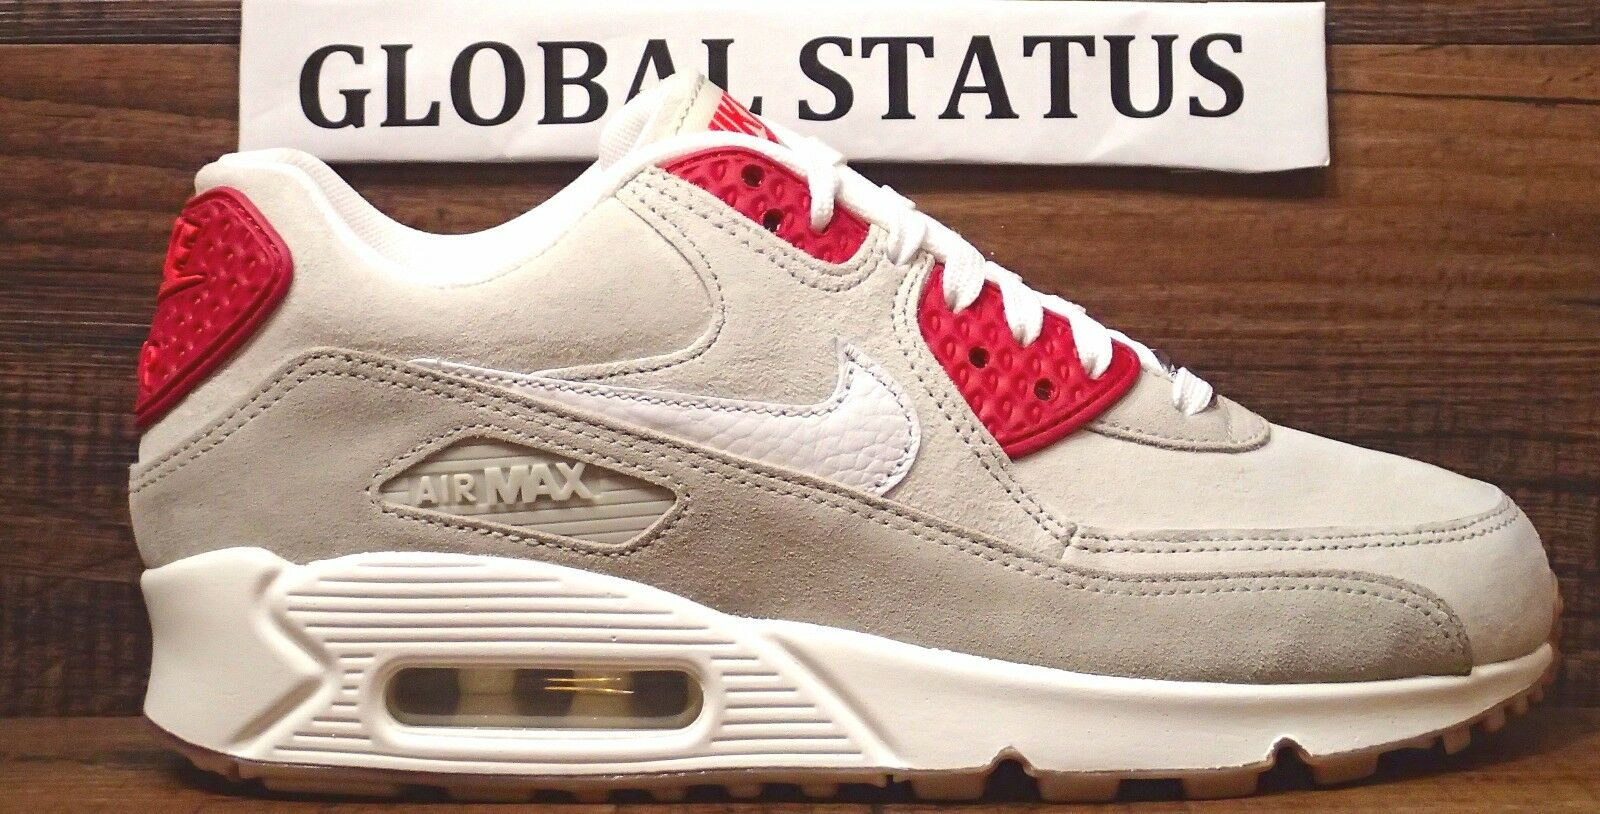 WOMENS NIKE AIR MAX 90 CITY DESSERT PACK NY CHEESECAKE SHOES 813150 200 SIZE  9